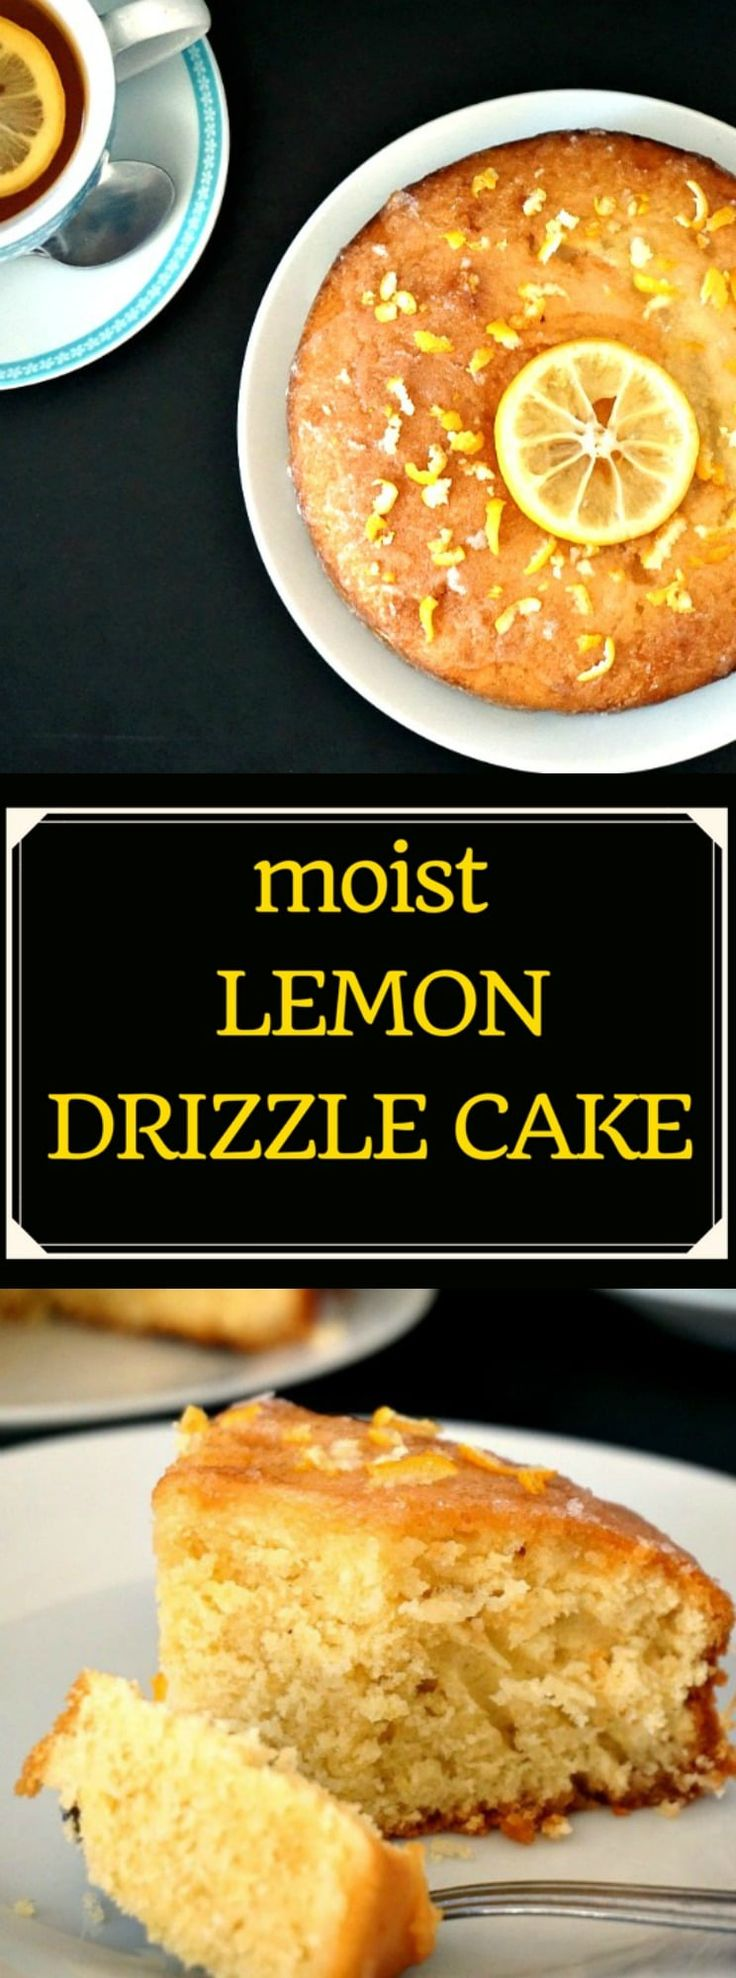 Moist lemon drizzle cake recipe without ground almonds, one of the most loved cake recipes. And most probably the easiest one to whip up. #easter, #easterrecipes , #lemondrizzlecake, #cake